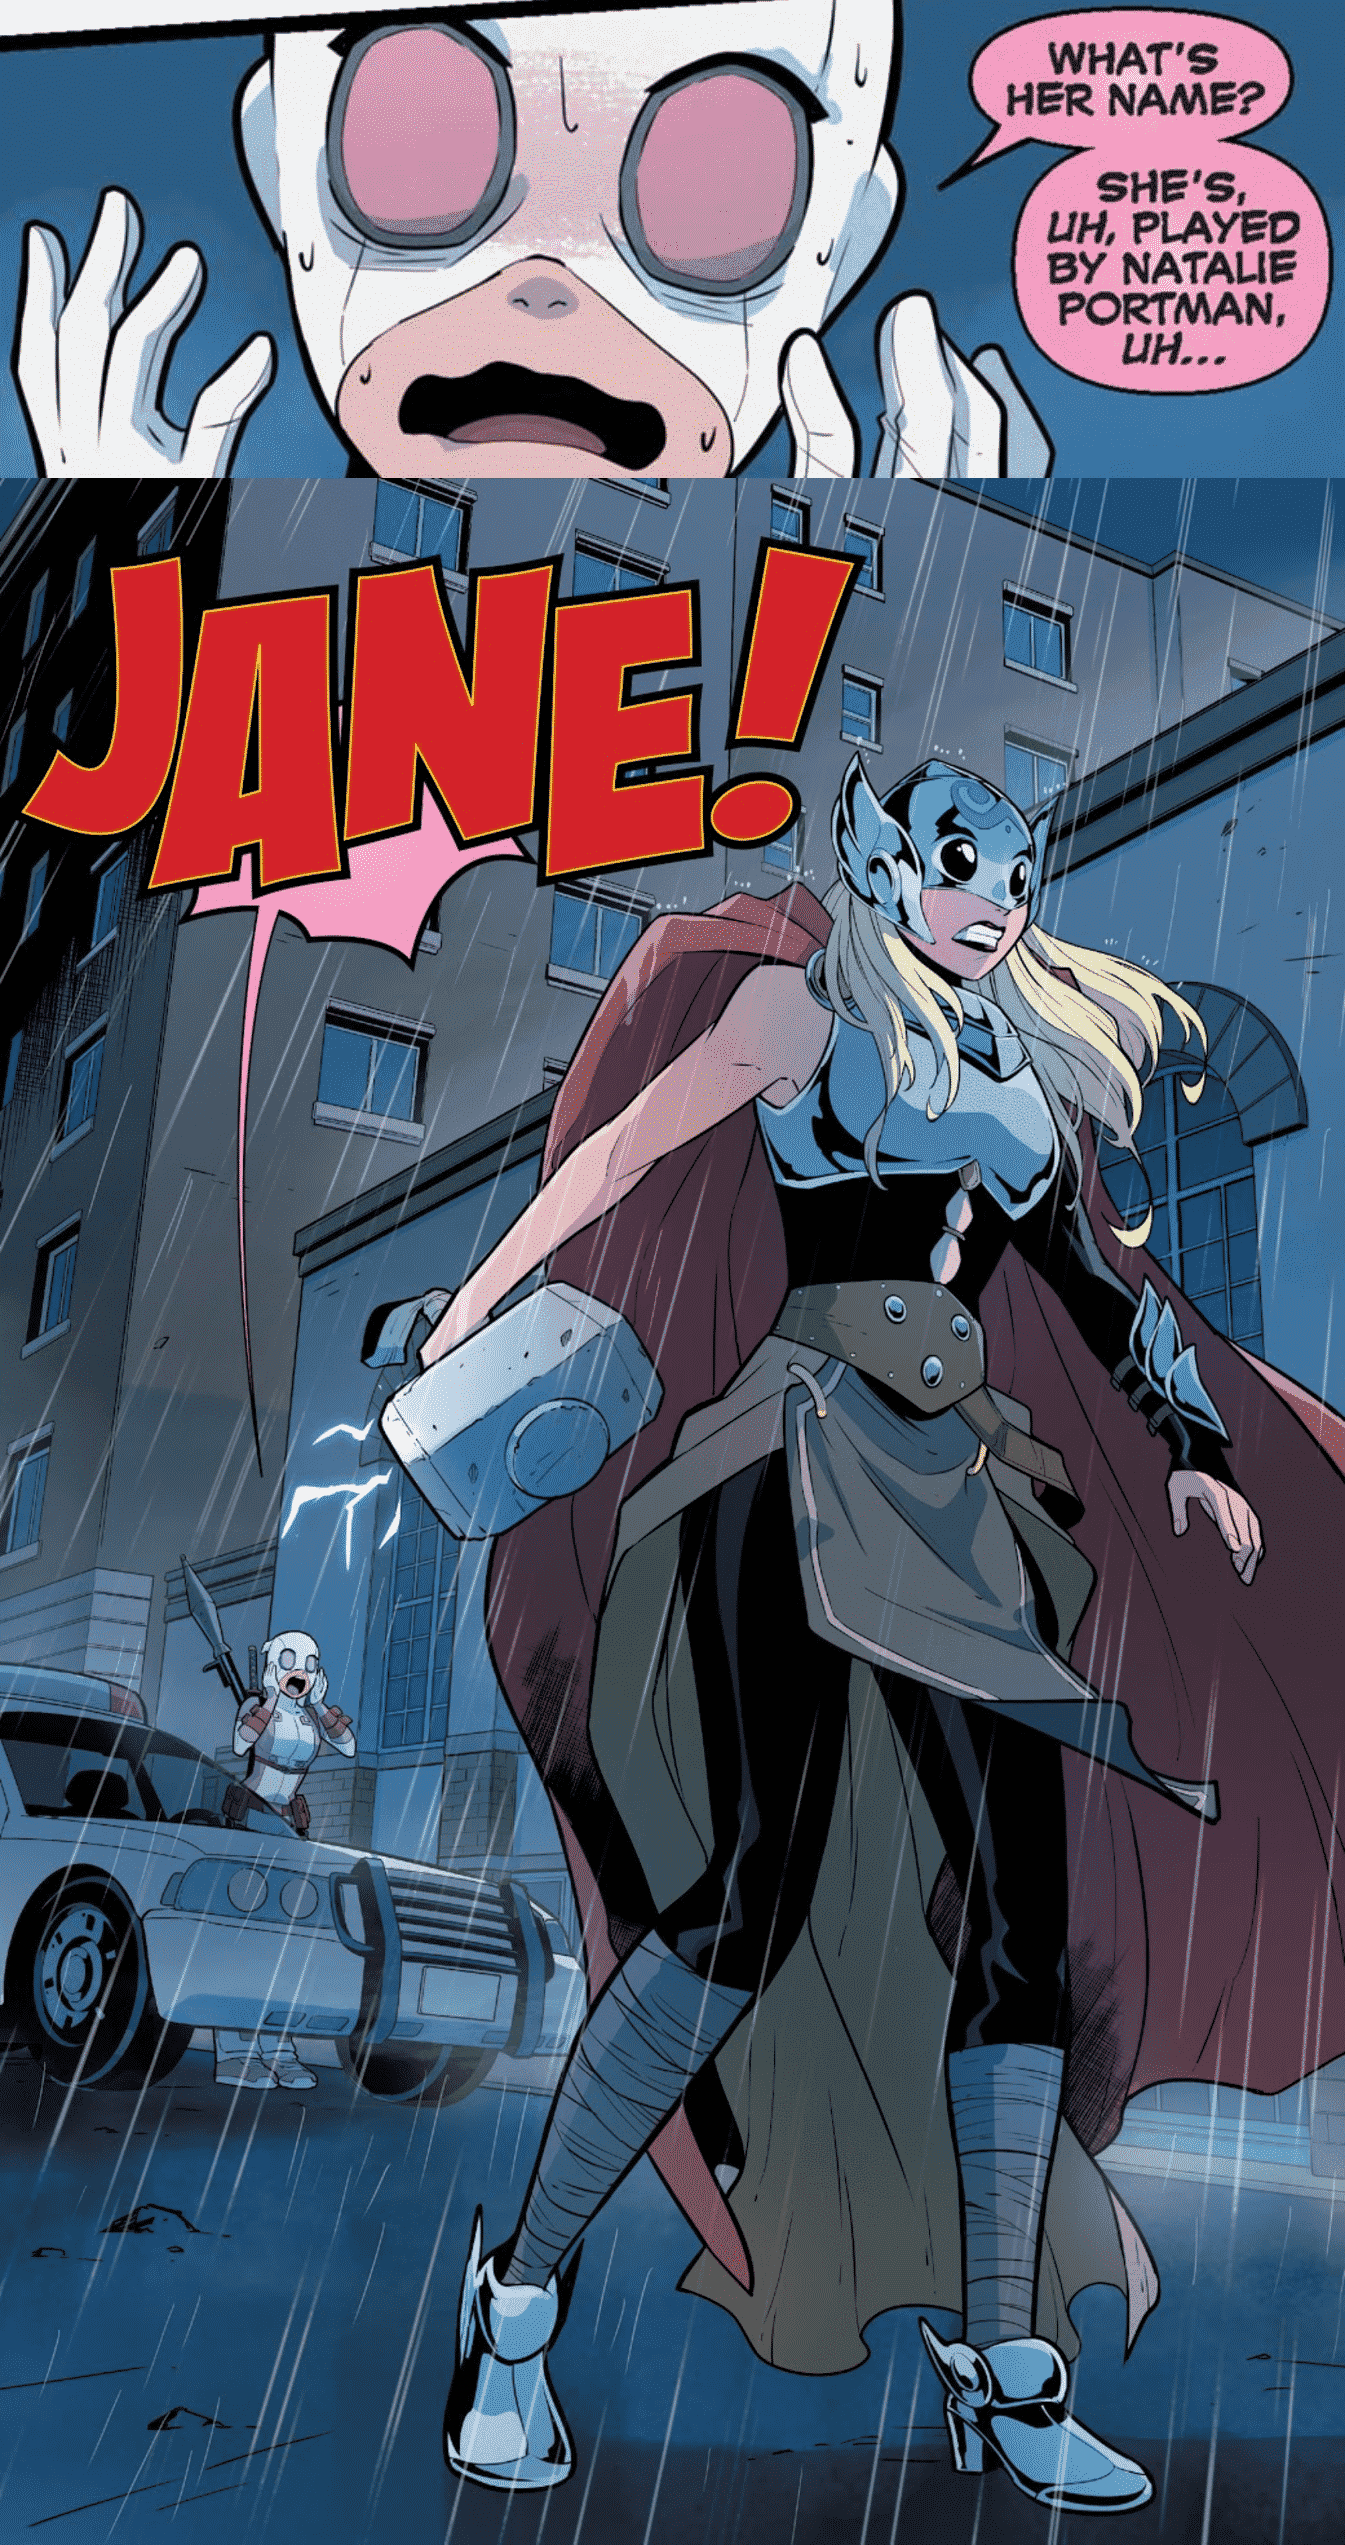 Jane Foster from Natalie Portman is already canon in the Marvel comics